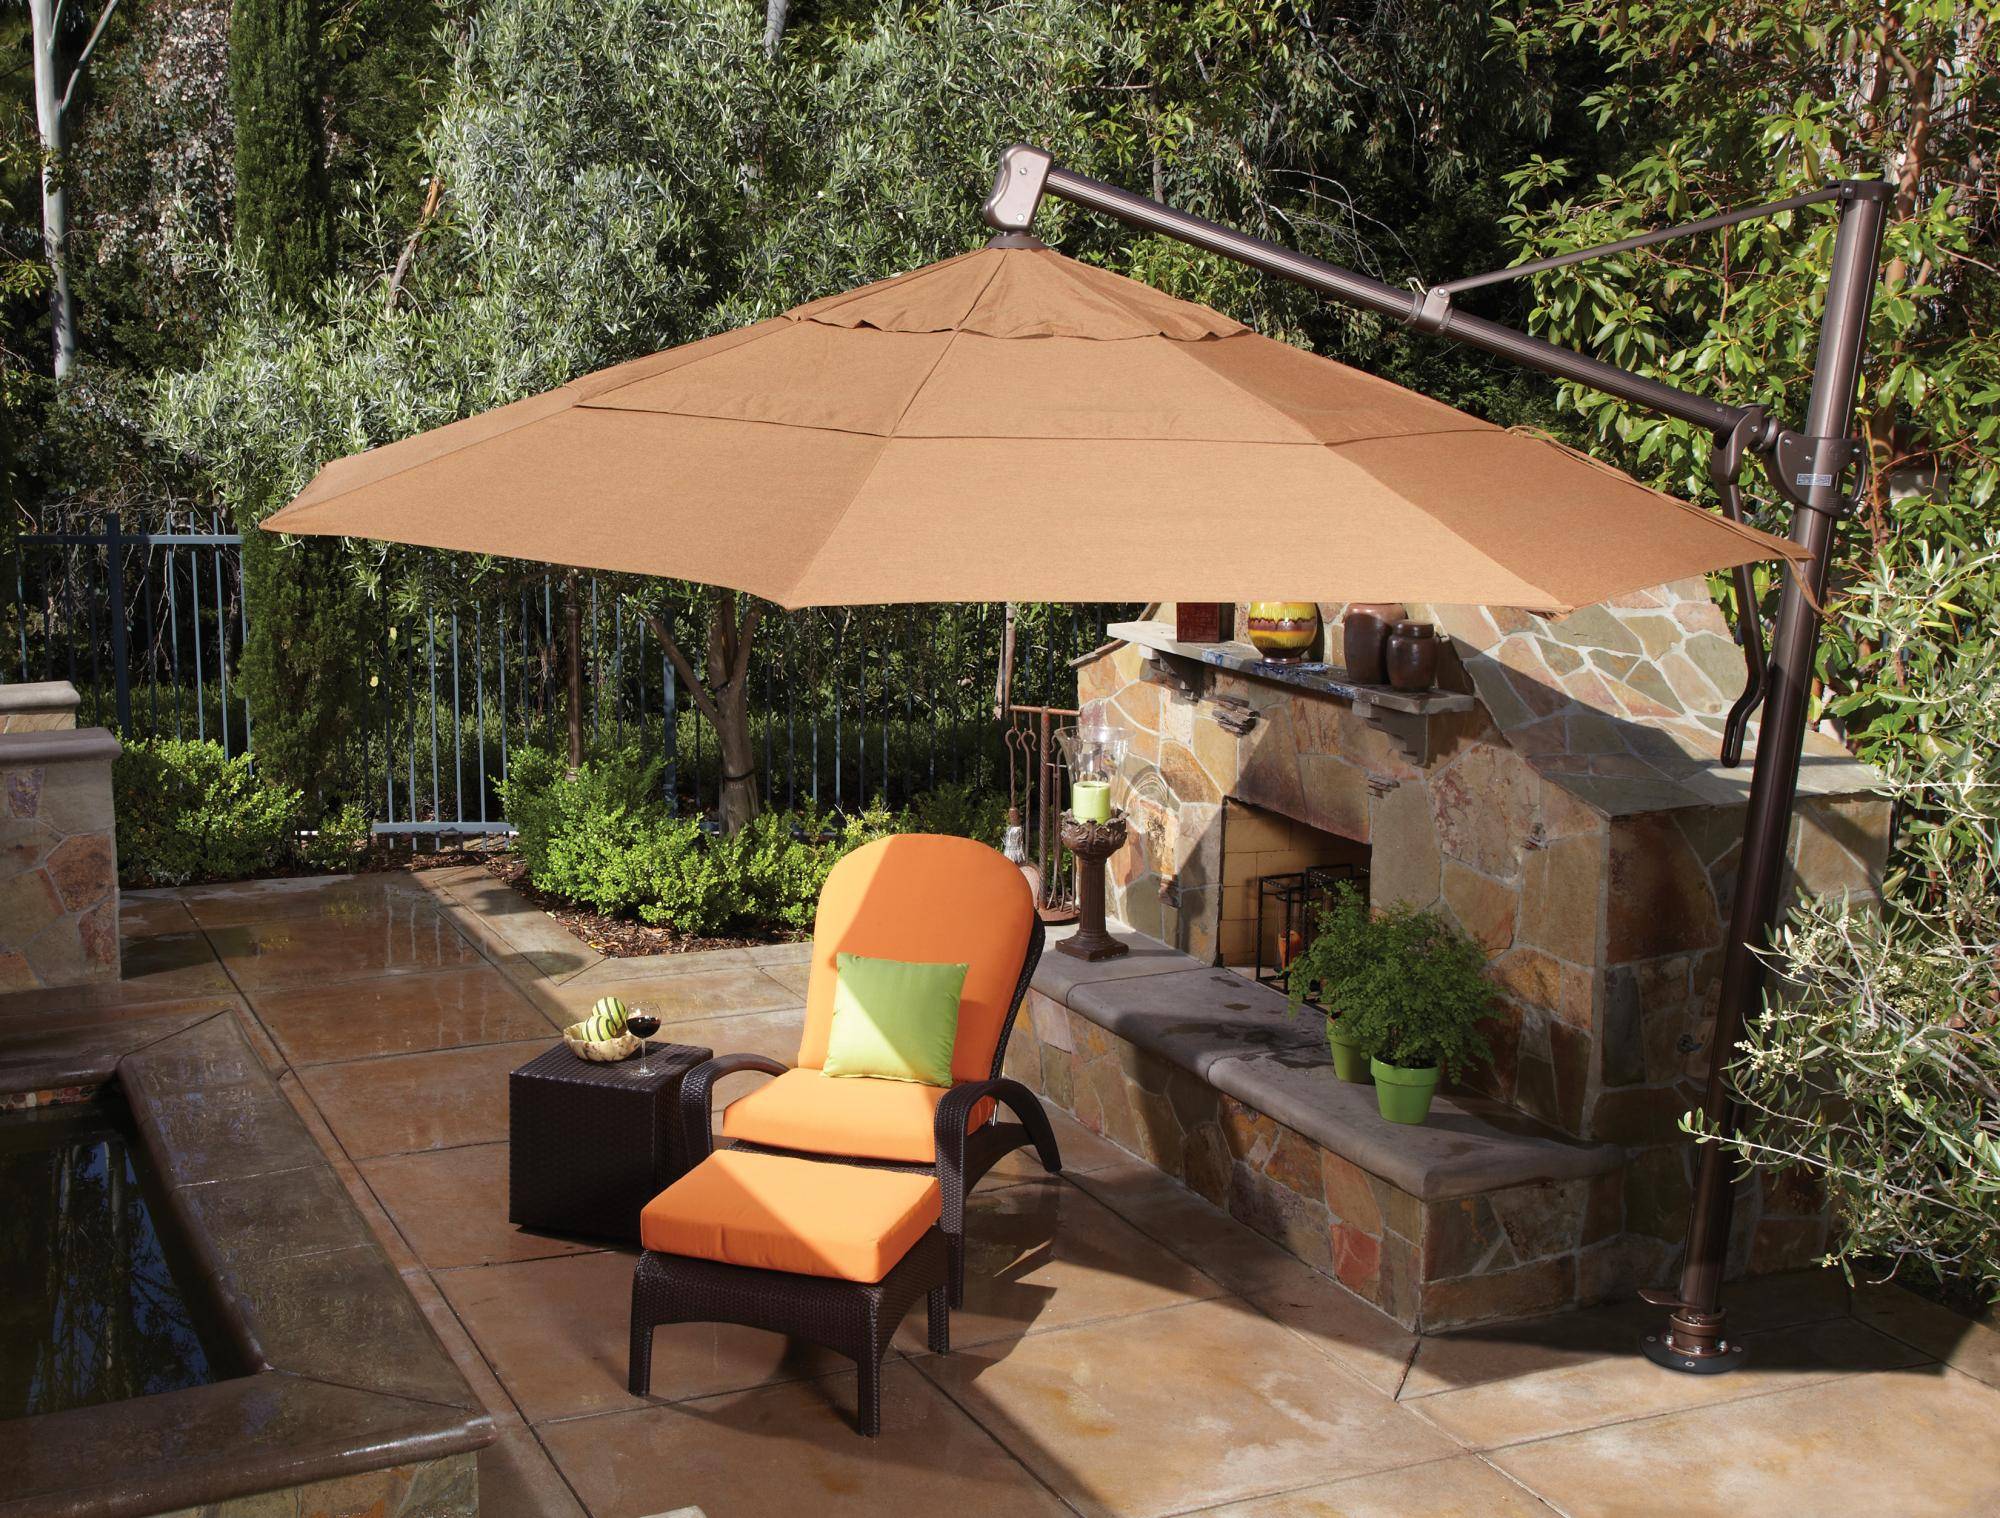 13 Ft. Cantilever Umbrella Shown with Concrete Mount Kit